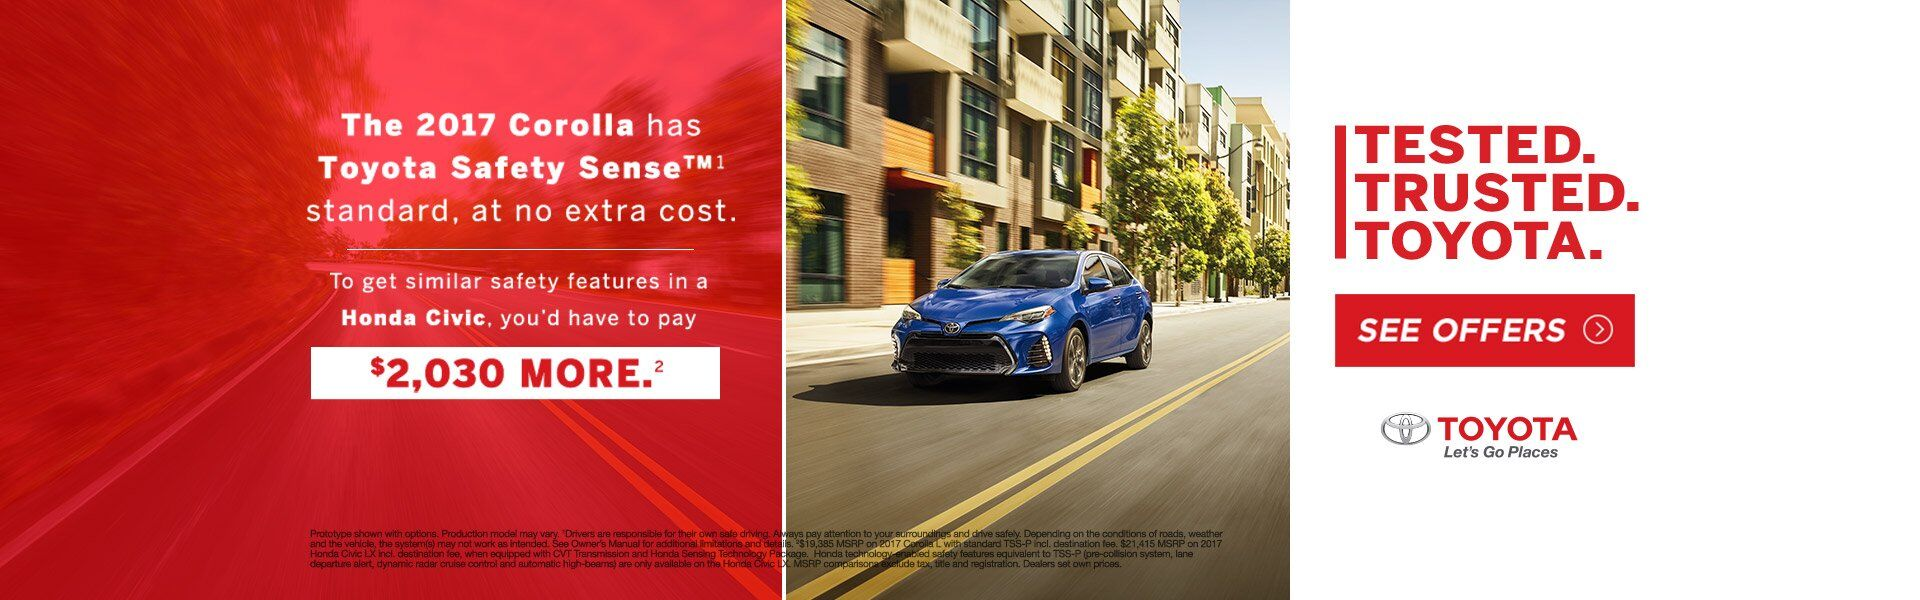 NYR - Tested Trusted 2017 Toyota Corolla